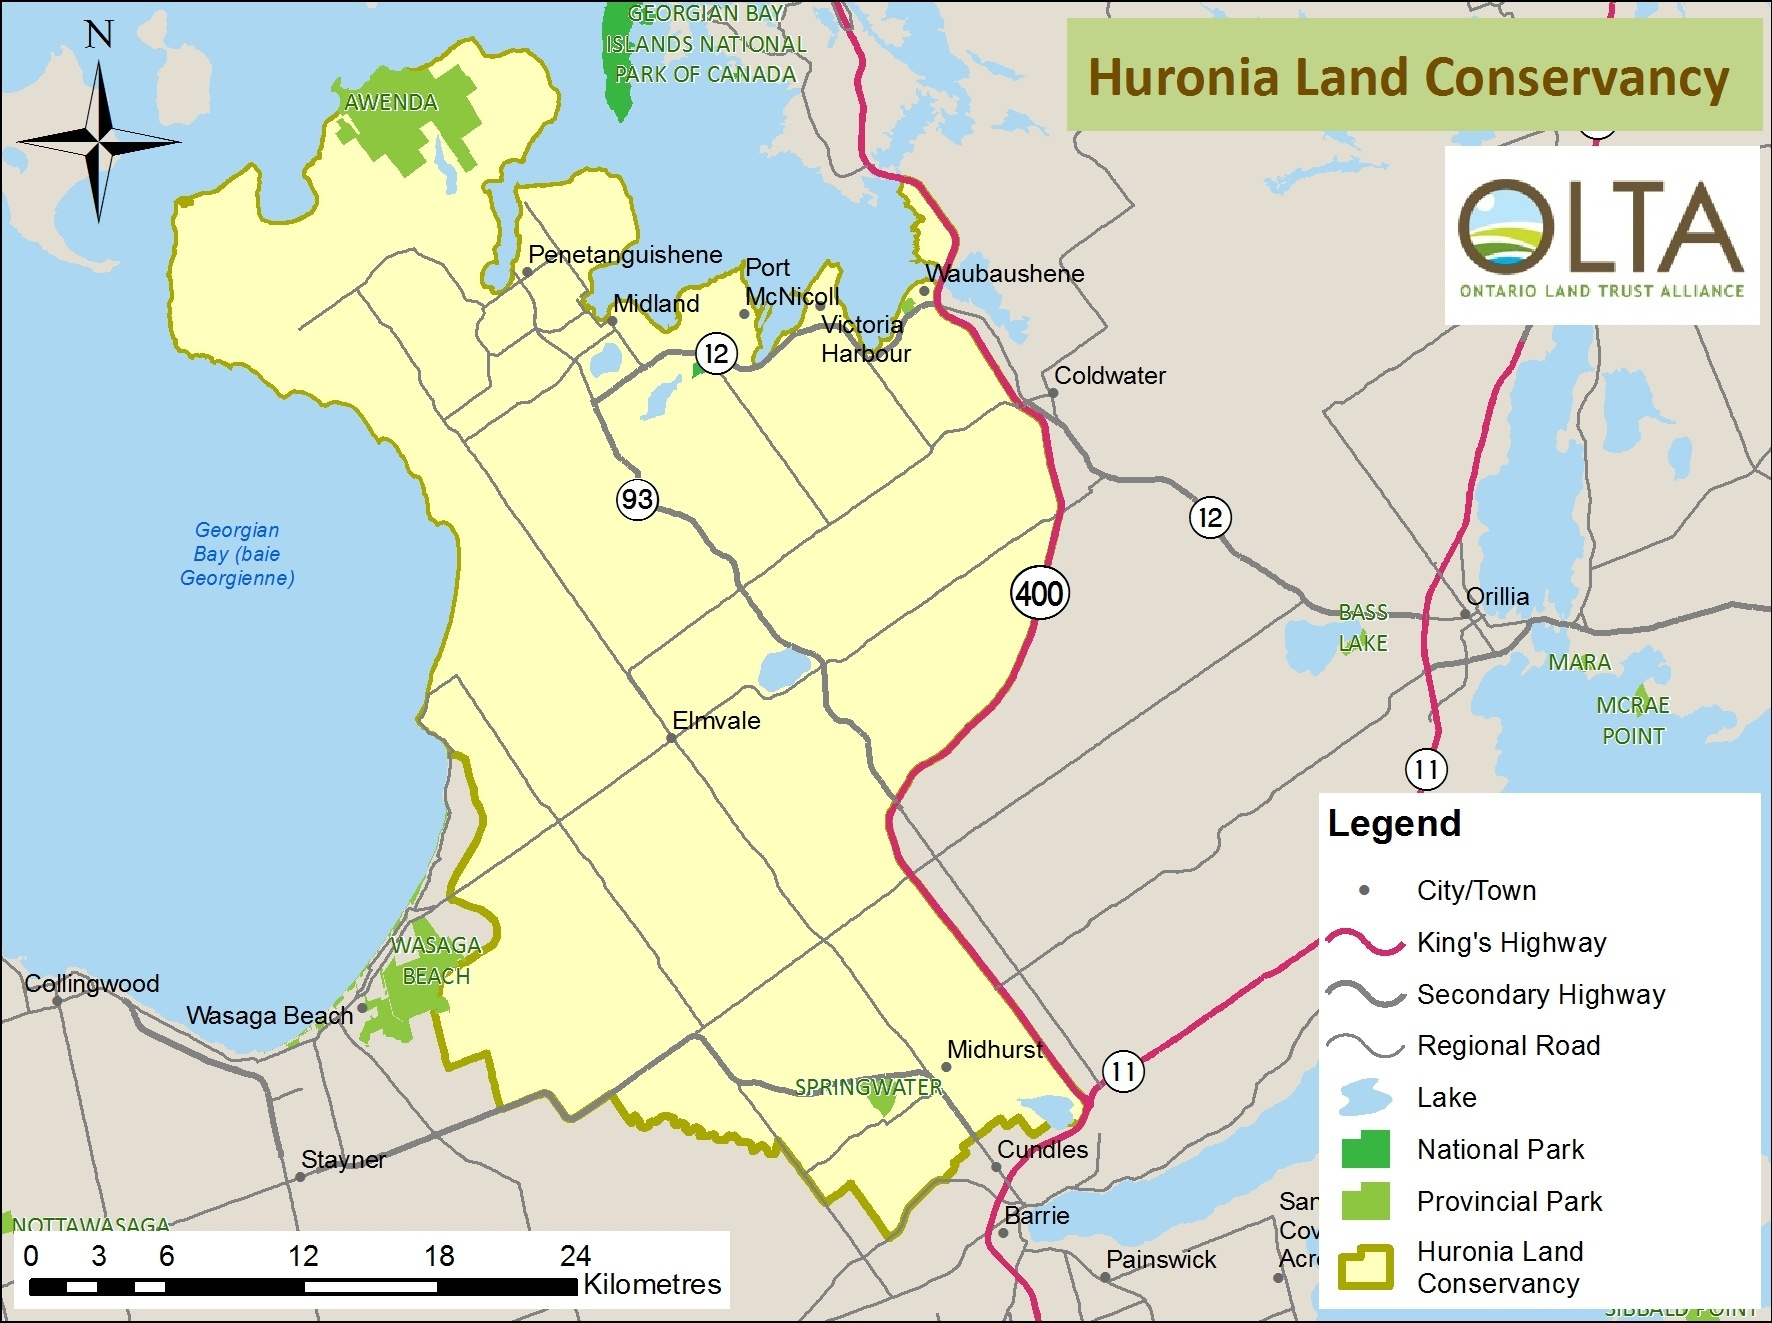 Huronia Land Conservancy area of operation map